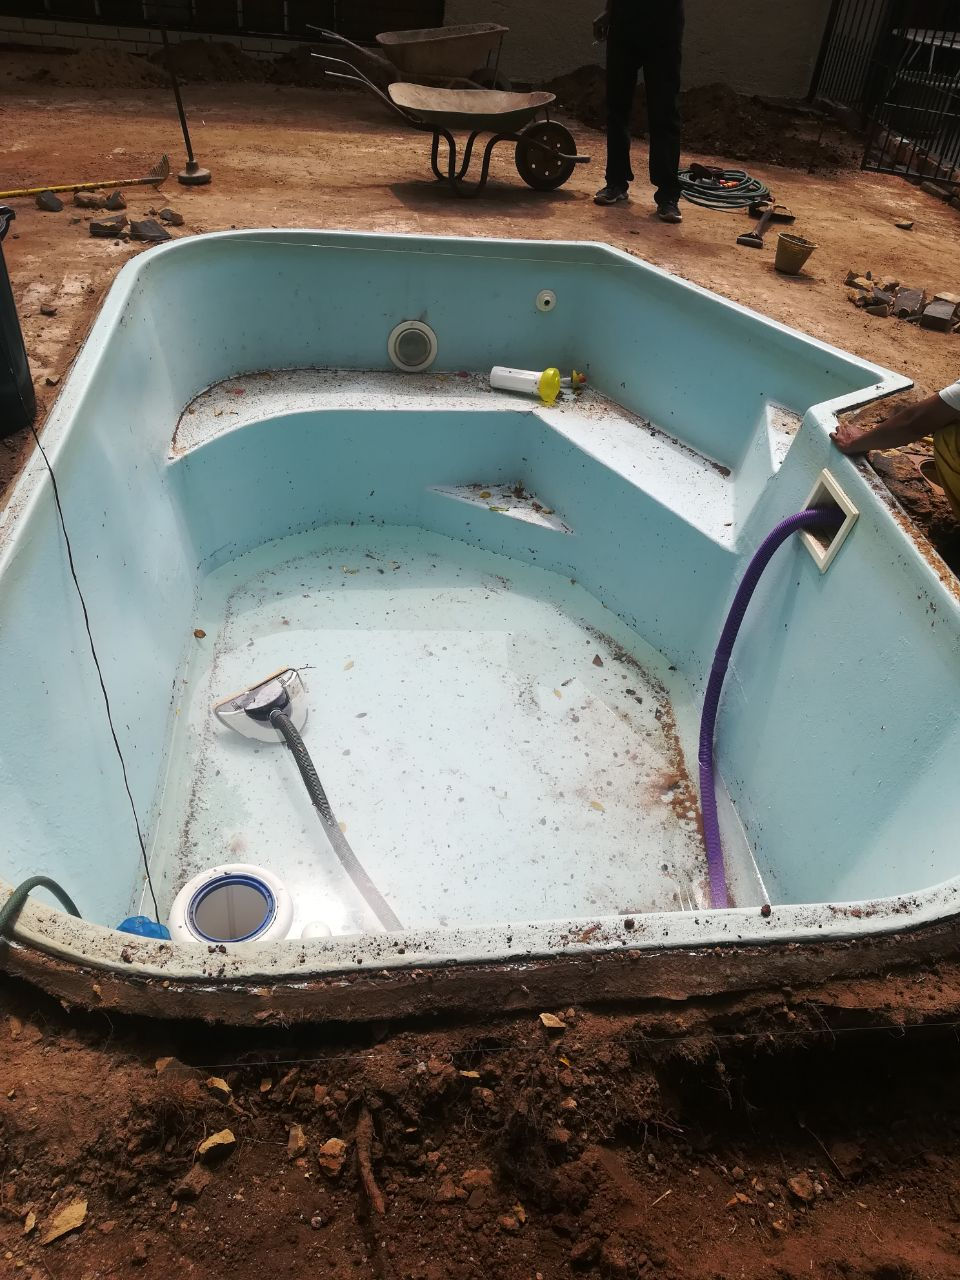 Fiberglass Swimming Pool for Sale | Junk Mail